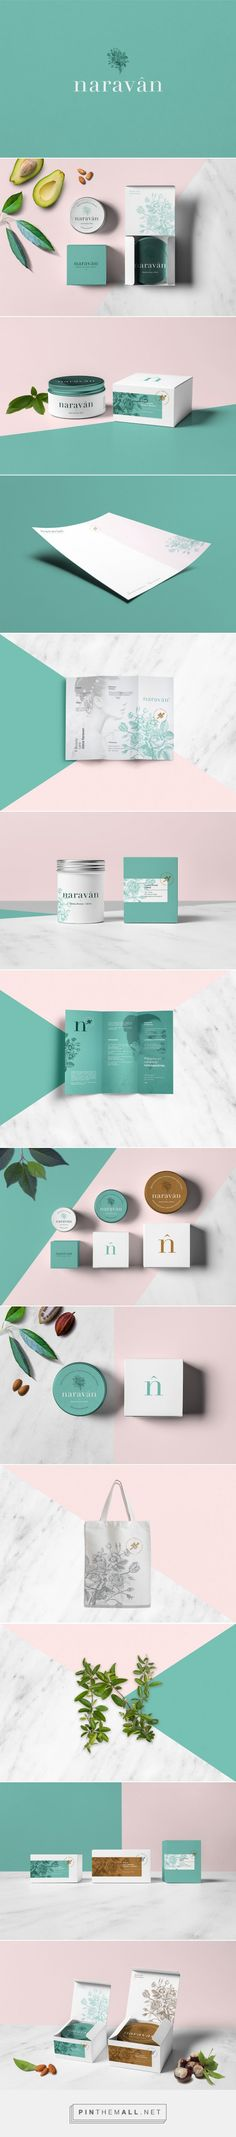 Naraván beauty packaging designed by Para todo hay FANS​…